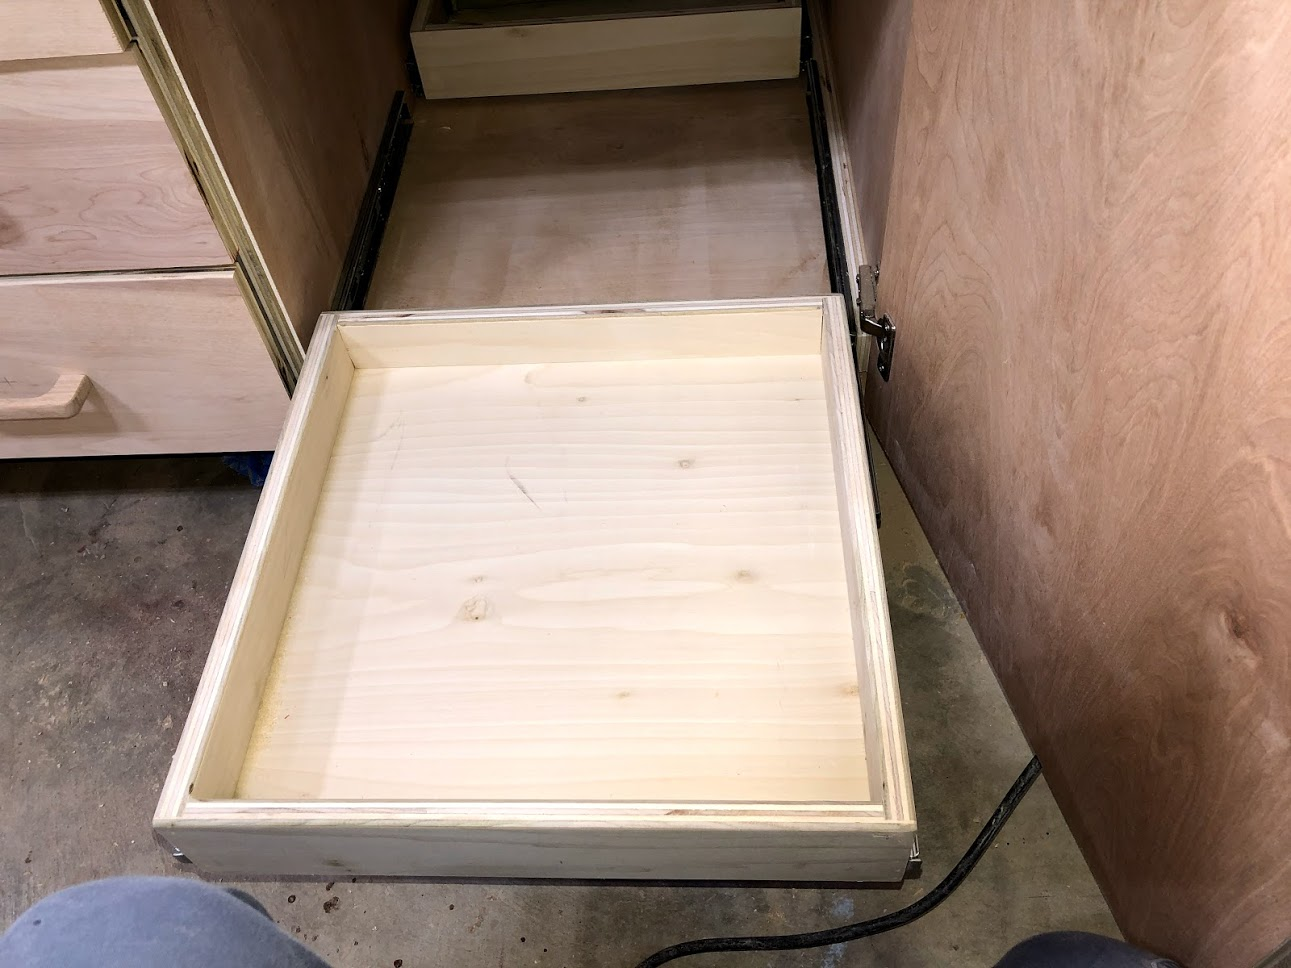 Since the tray operate on drawer slides it allows me easy access to the back of the tray